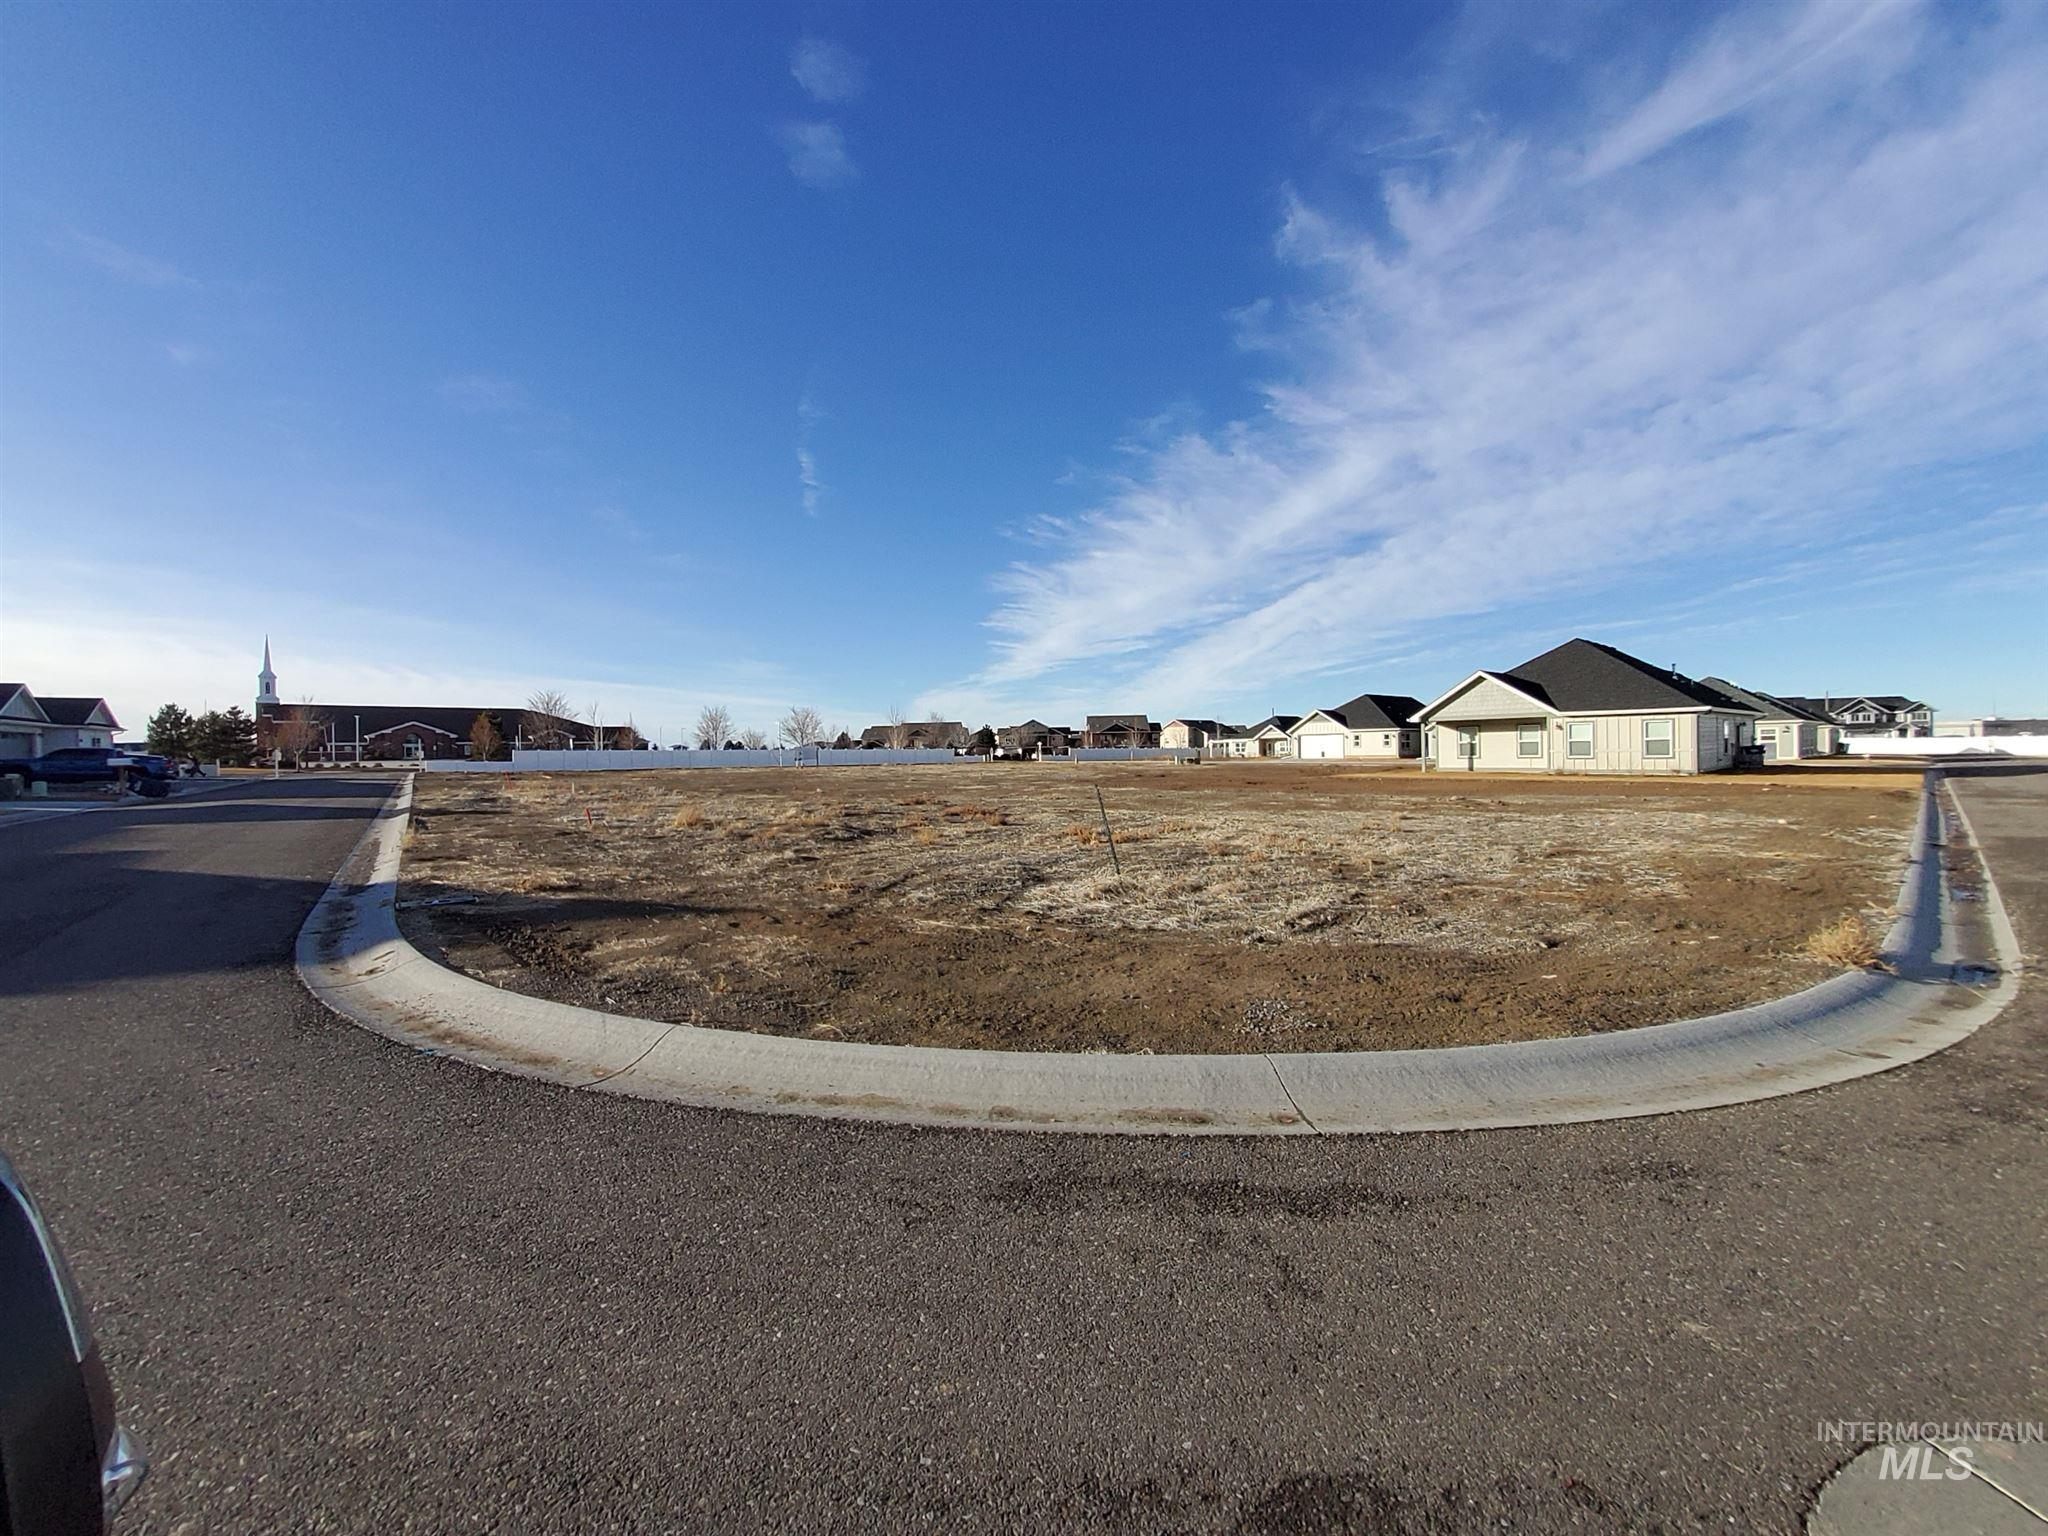 1090 Easy Ave, Twin Falls, Idaho 83301, Land For Sale, Price $59,000, 98790772